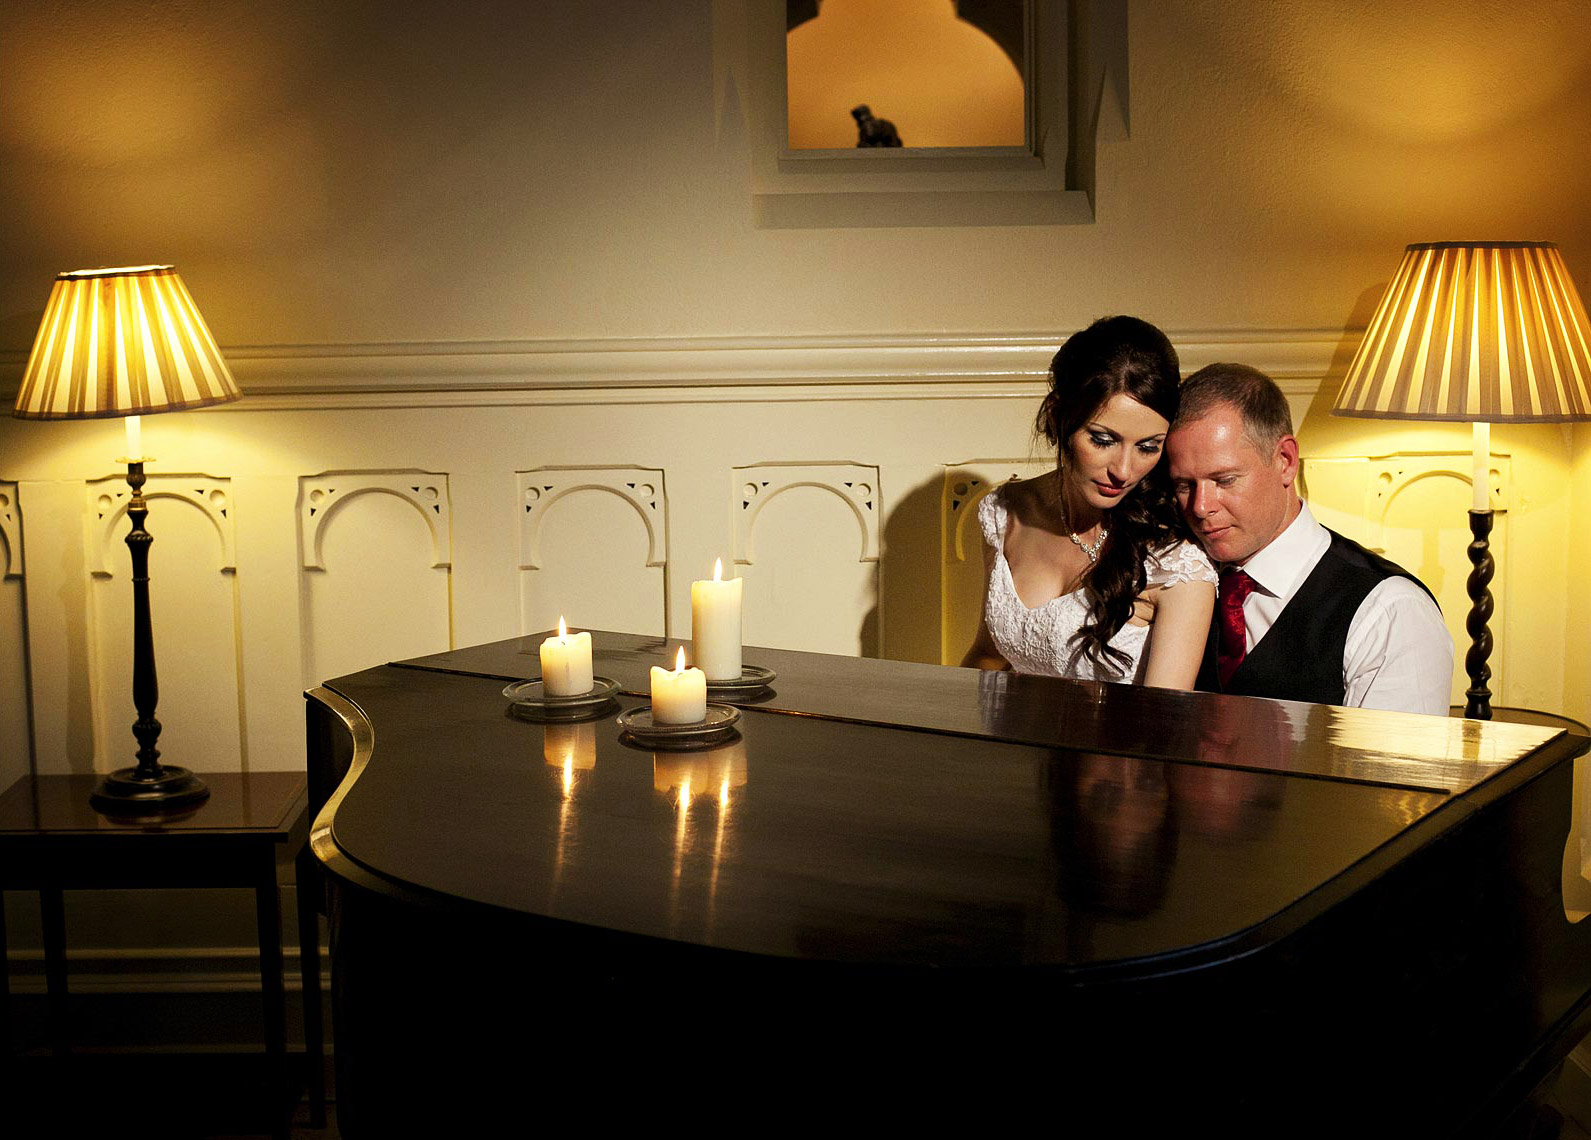 contemporary-wedding-photography-at-Elvetham-hotel-DUP.jpg